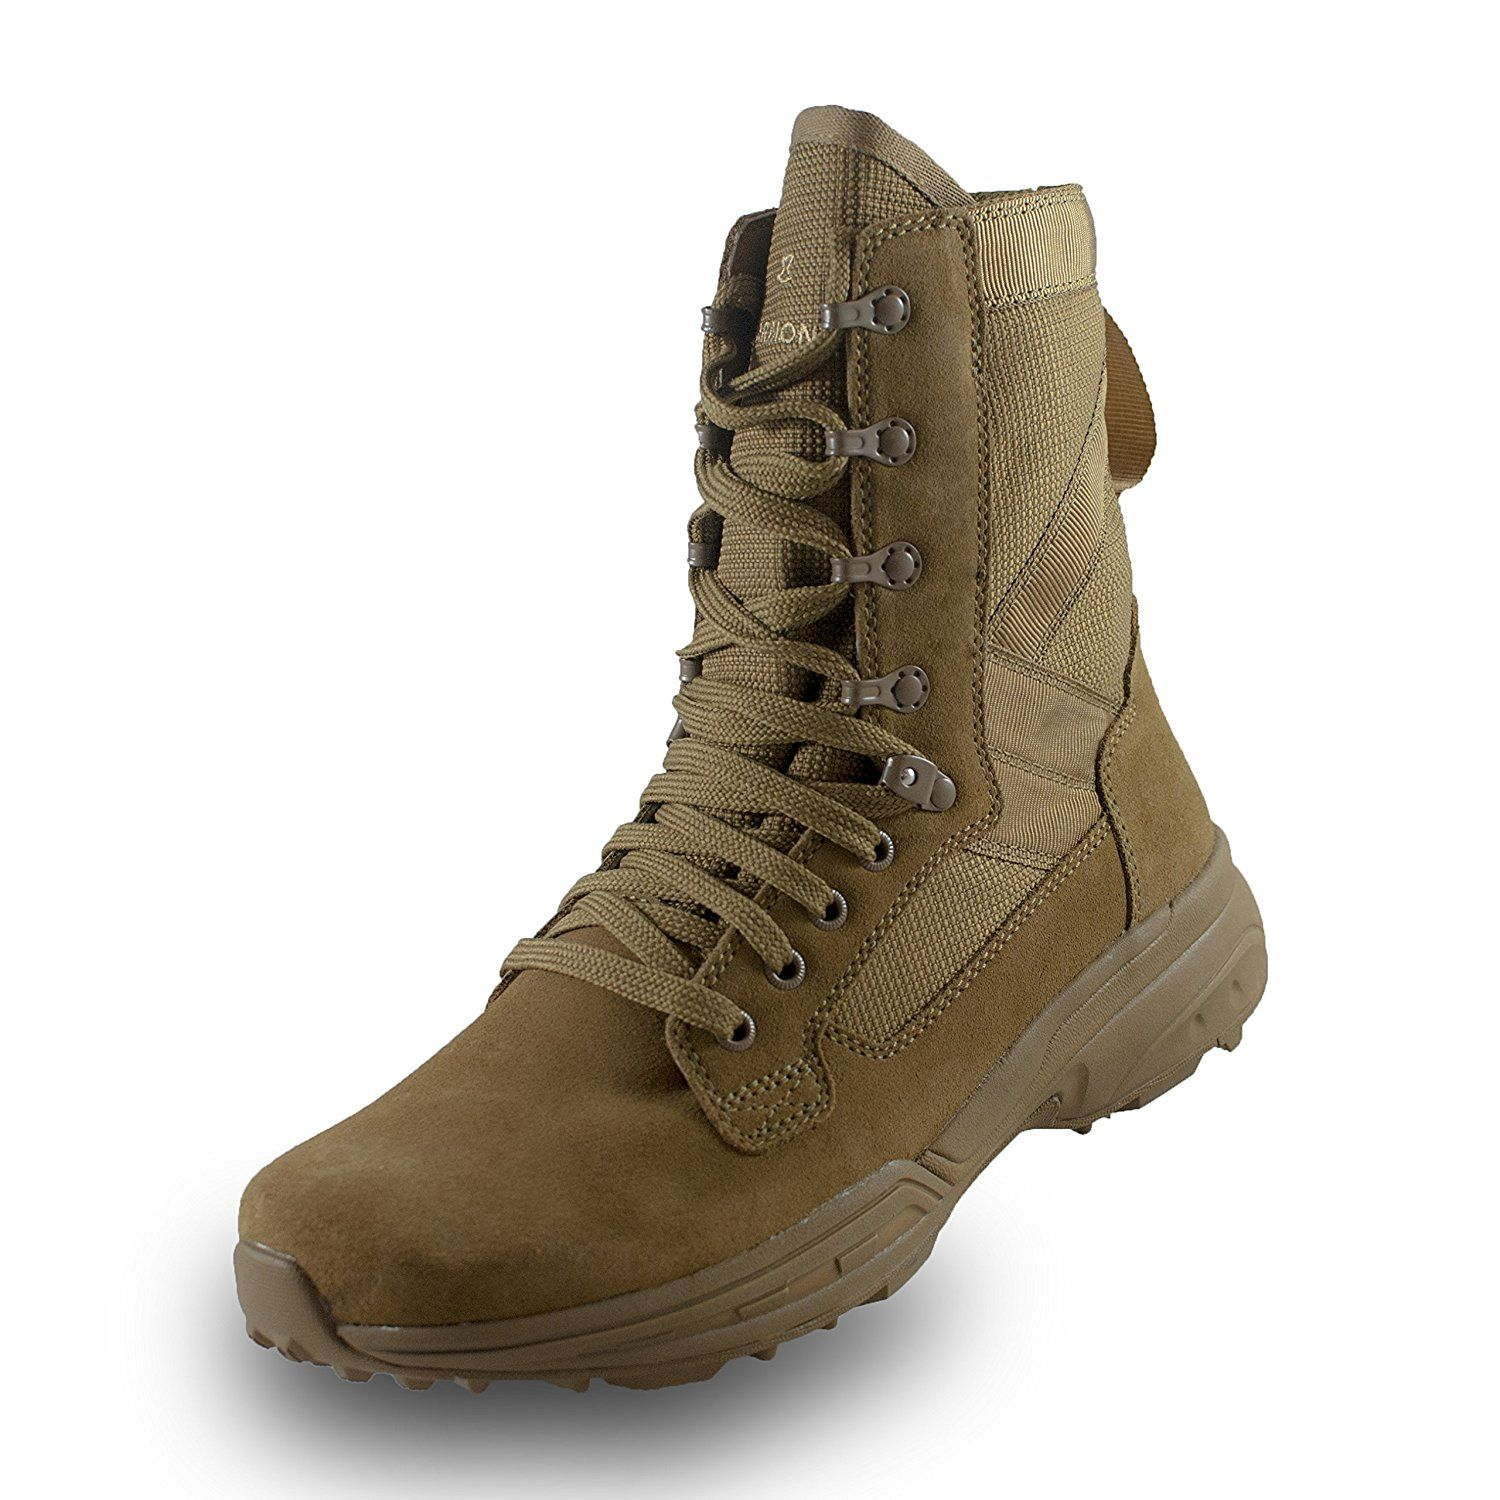 Garmont T8 Nfs Tactical Boot Coyote Read More Reviews Of The Product By Visiting The Link On The Image Tactical Boots Boots Work Boots